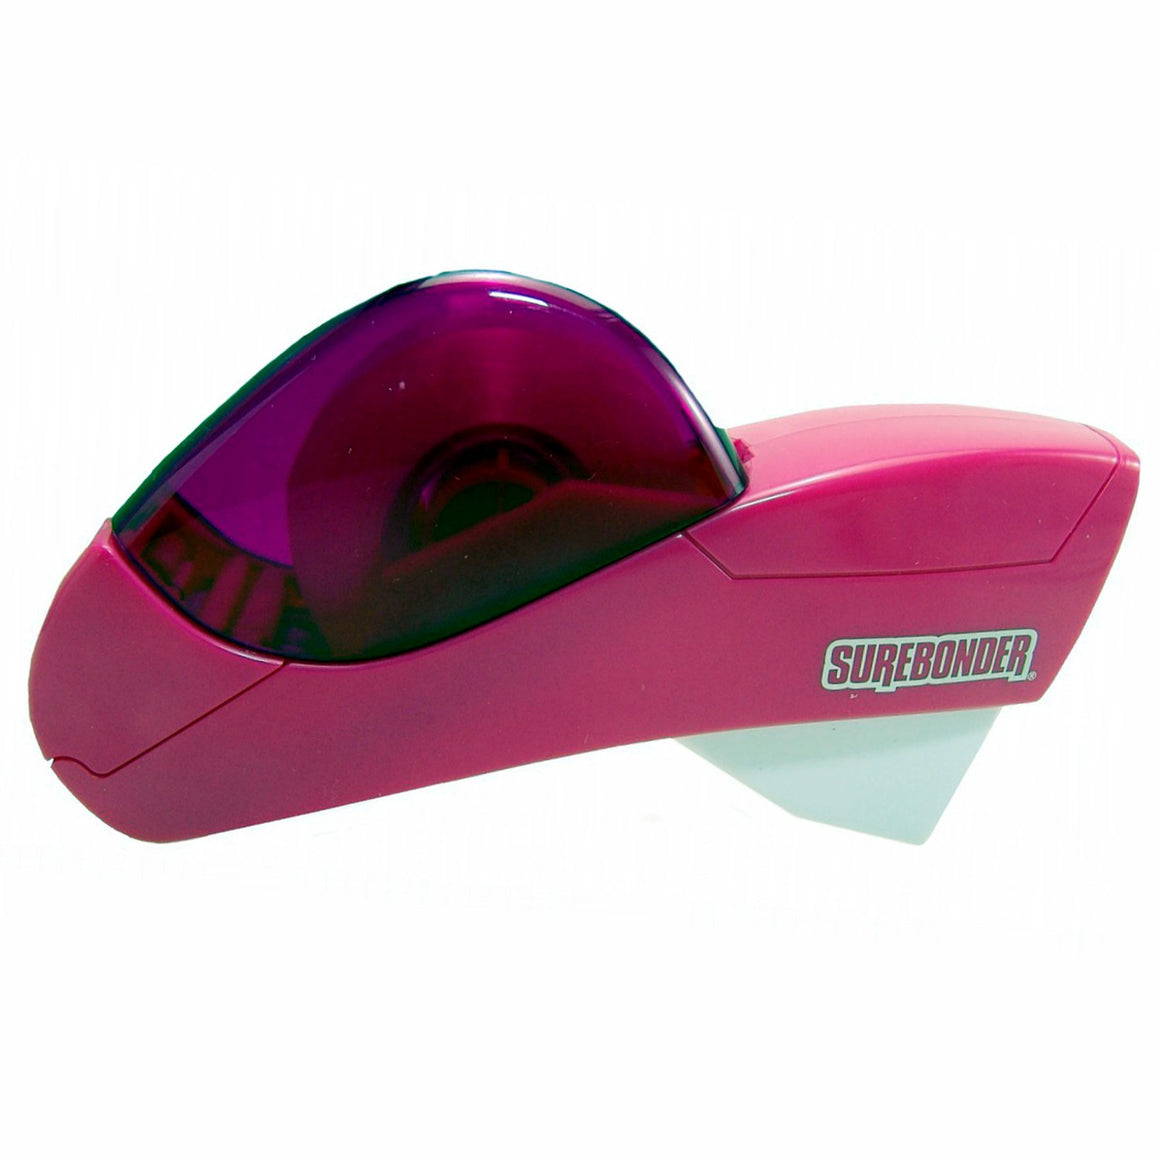 TD-100 Automatic Tape Dispenser - Dispenses perfectly cut strips of tape!